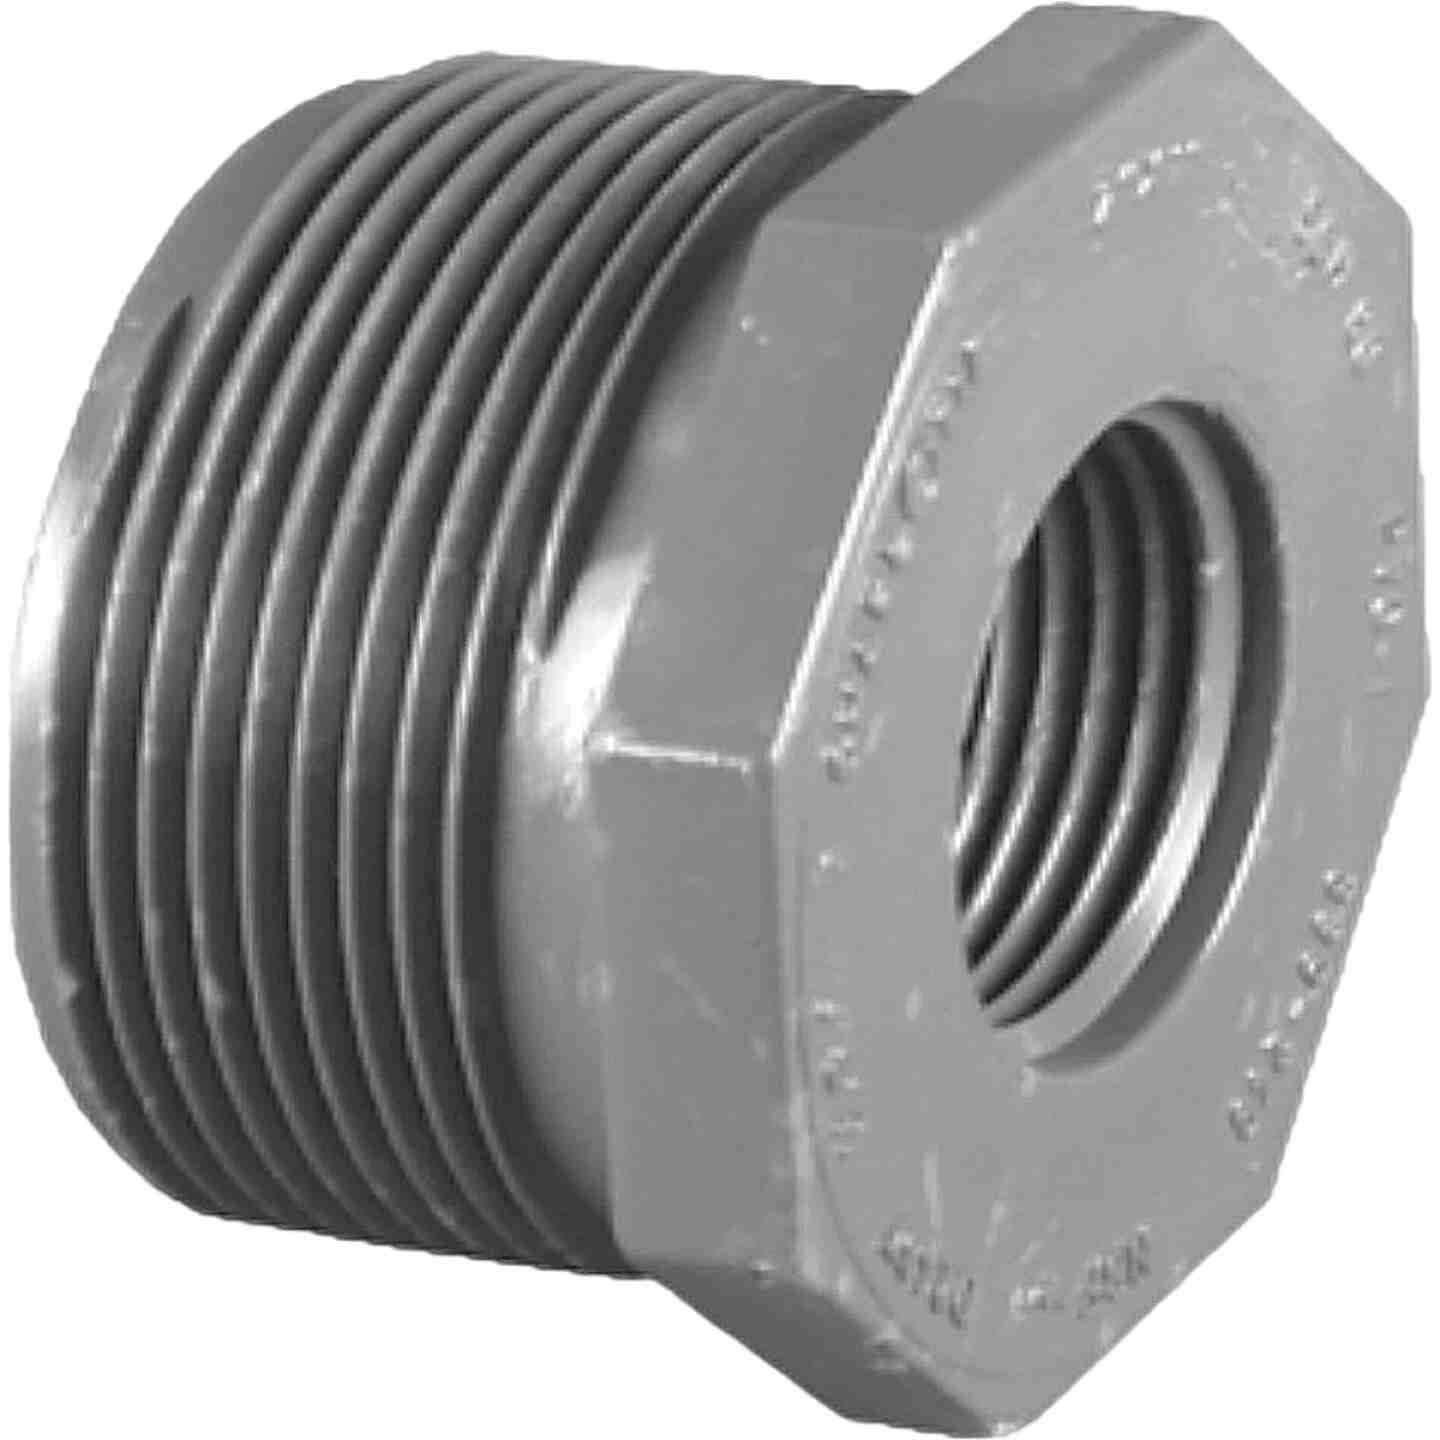 Charlotte Pipe 2 In. MPT x 1-1/2 In. FPT Schedule 80 Reducing PVC Bushing Image 1